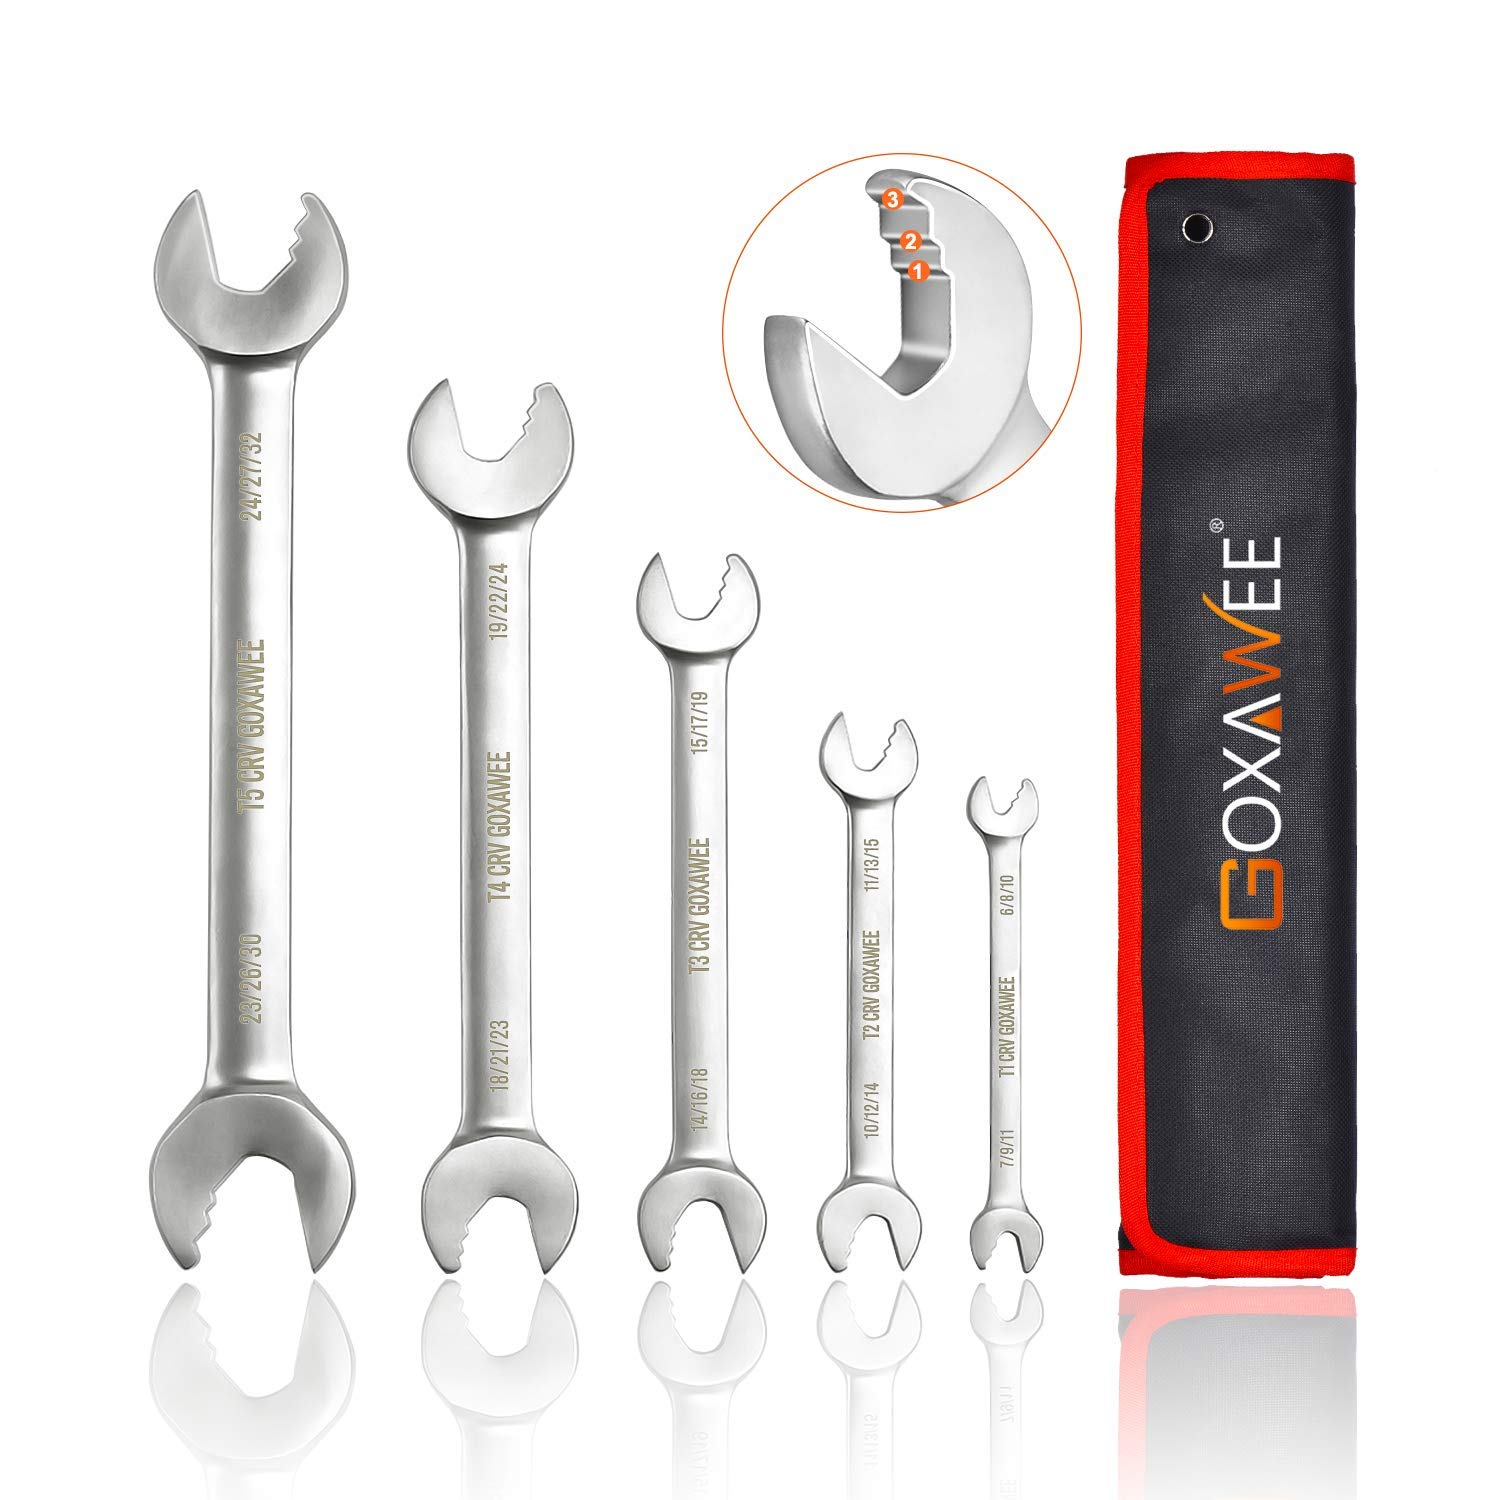 Ratchet Wrench Set, GOXAWEE 6 in 1 Combination Wrenches Multipurpose CRV Double Open-End Wrench Roll Home Hand Tool with Bag - 5Pcs Metric Size (6mm-32mm) by GOXAWEE